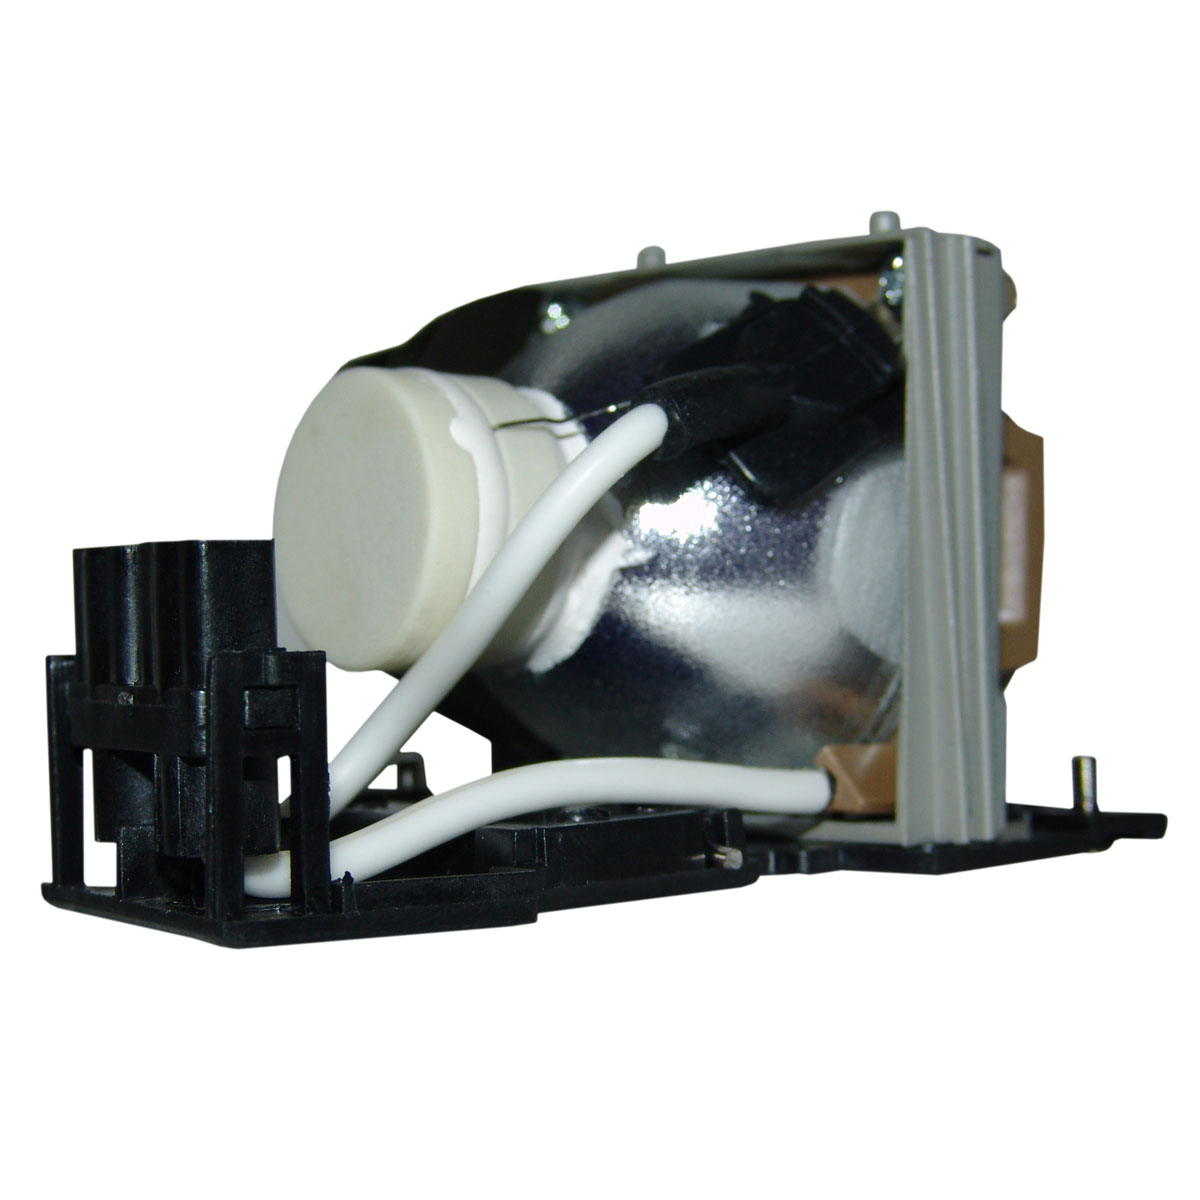 Original Osram Projector Lamp Replacement with Housing for Philips LCA3125 - image 3 of 5